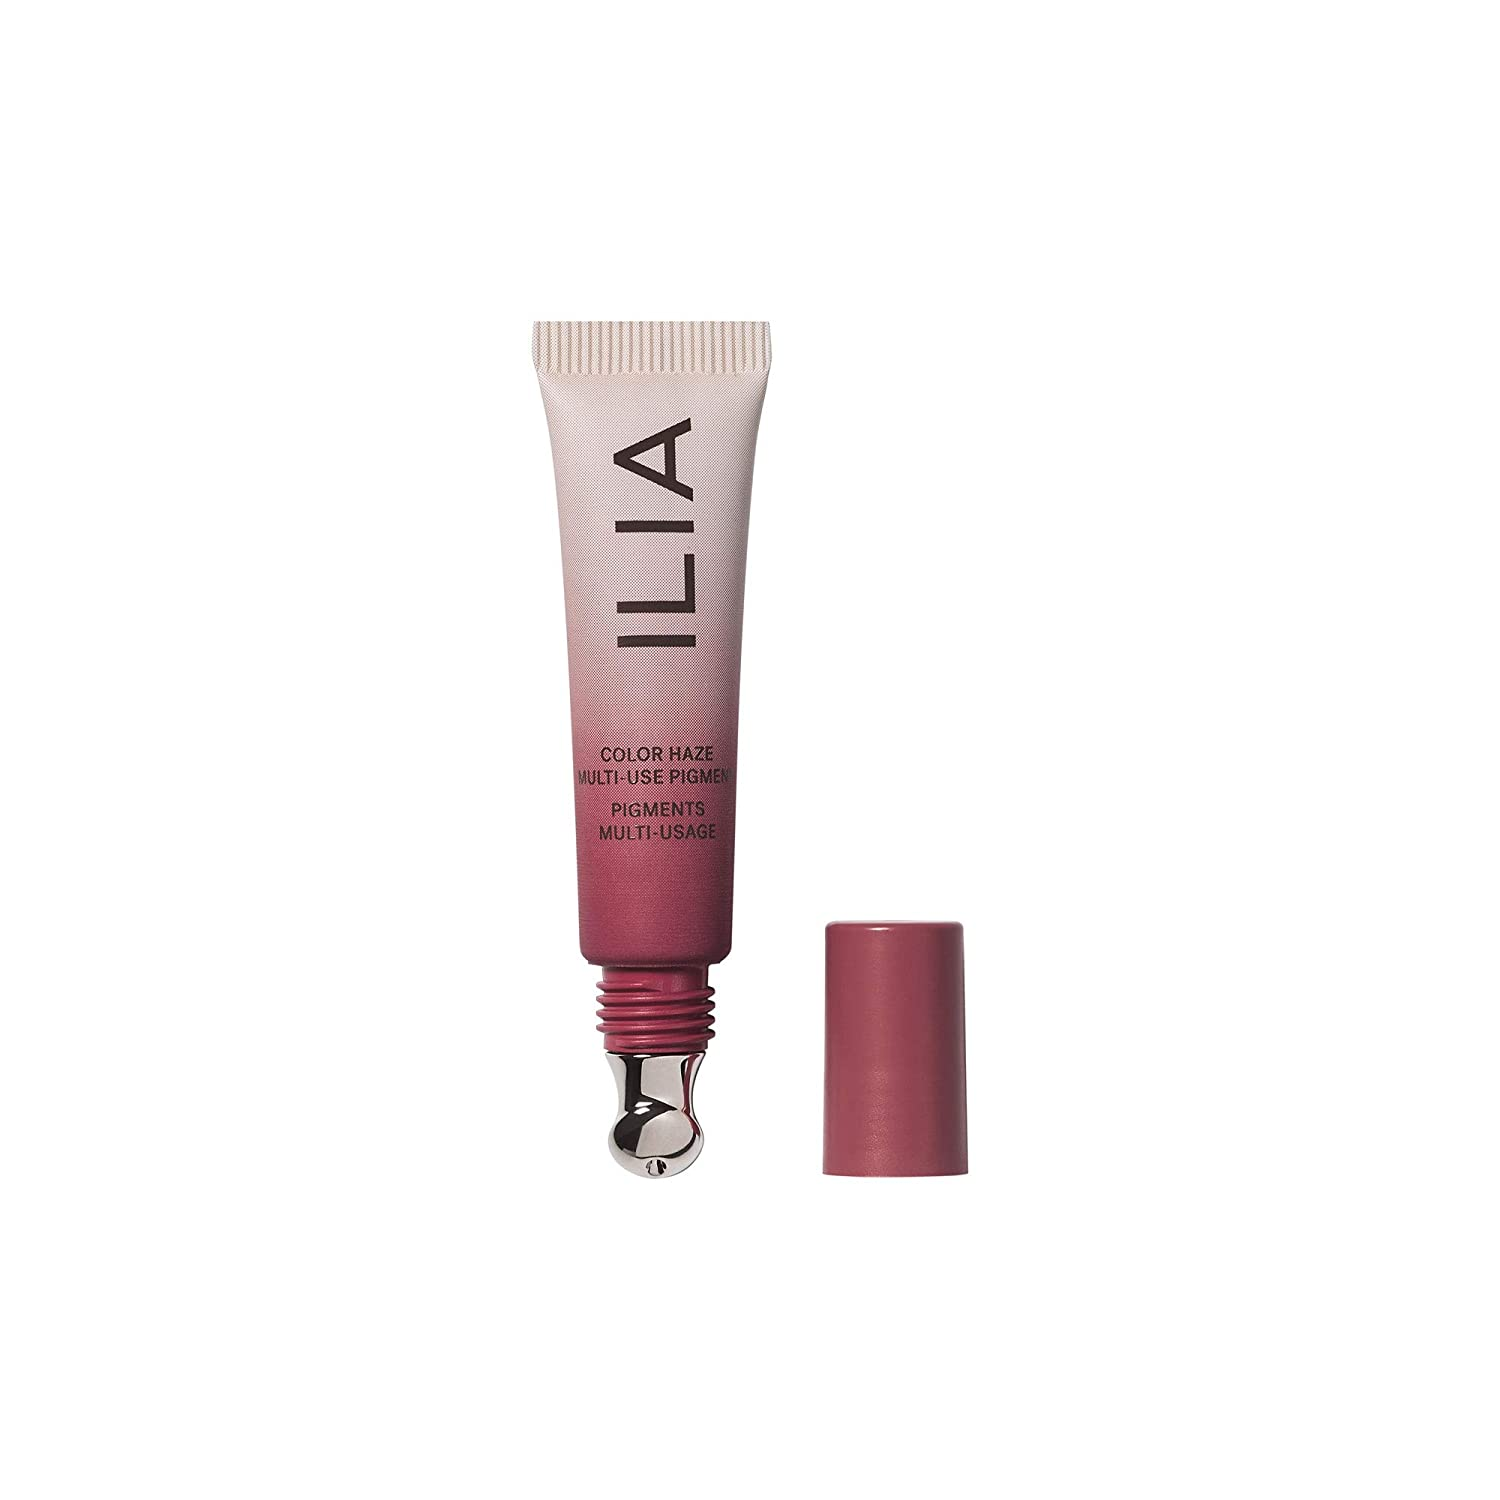 ILIA - Natural Color Haze Multi-Matte Pigment | Cruelty-Free, Vegan, Clean Beauty (Sing (Rose))